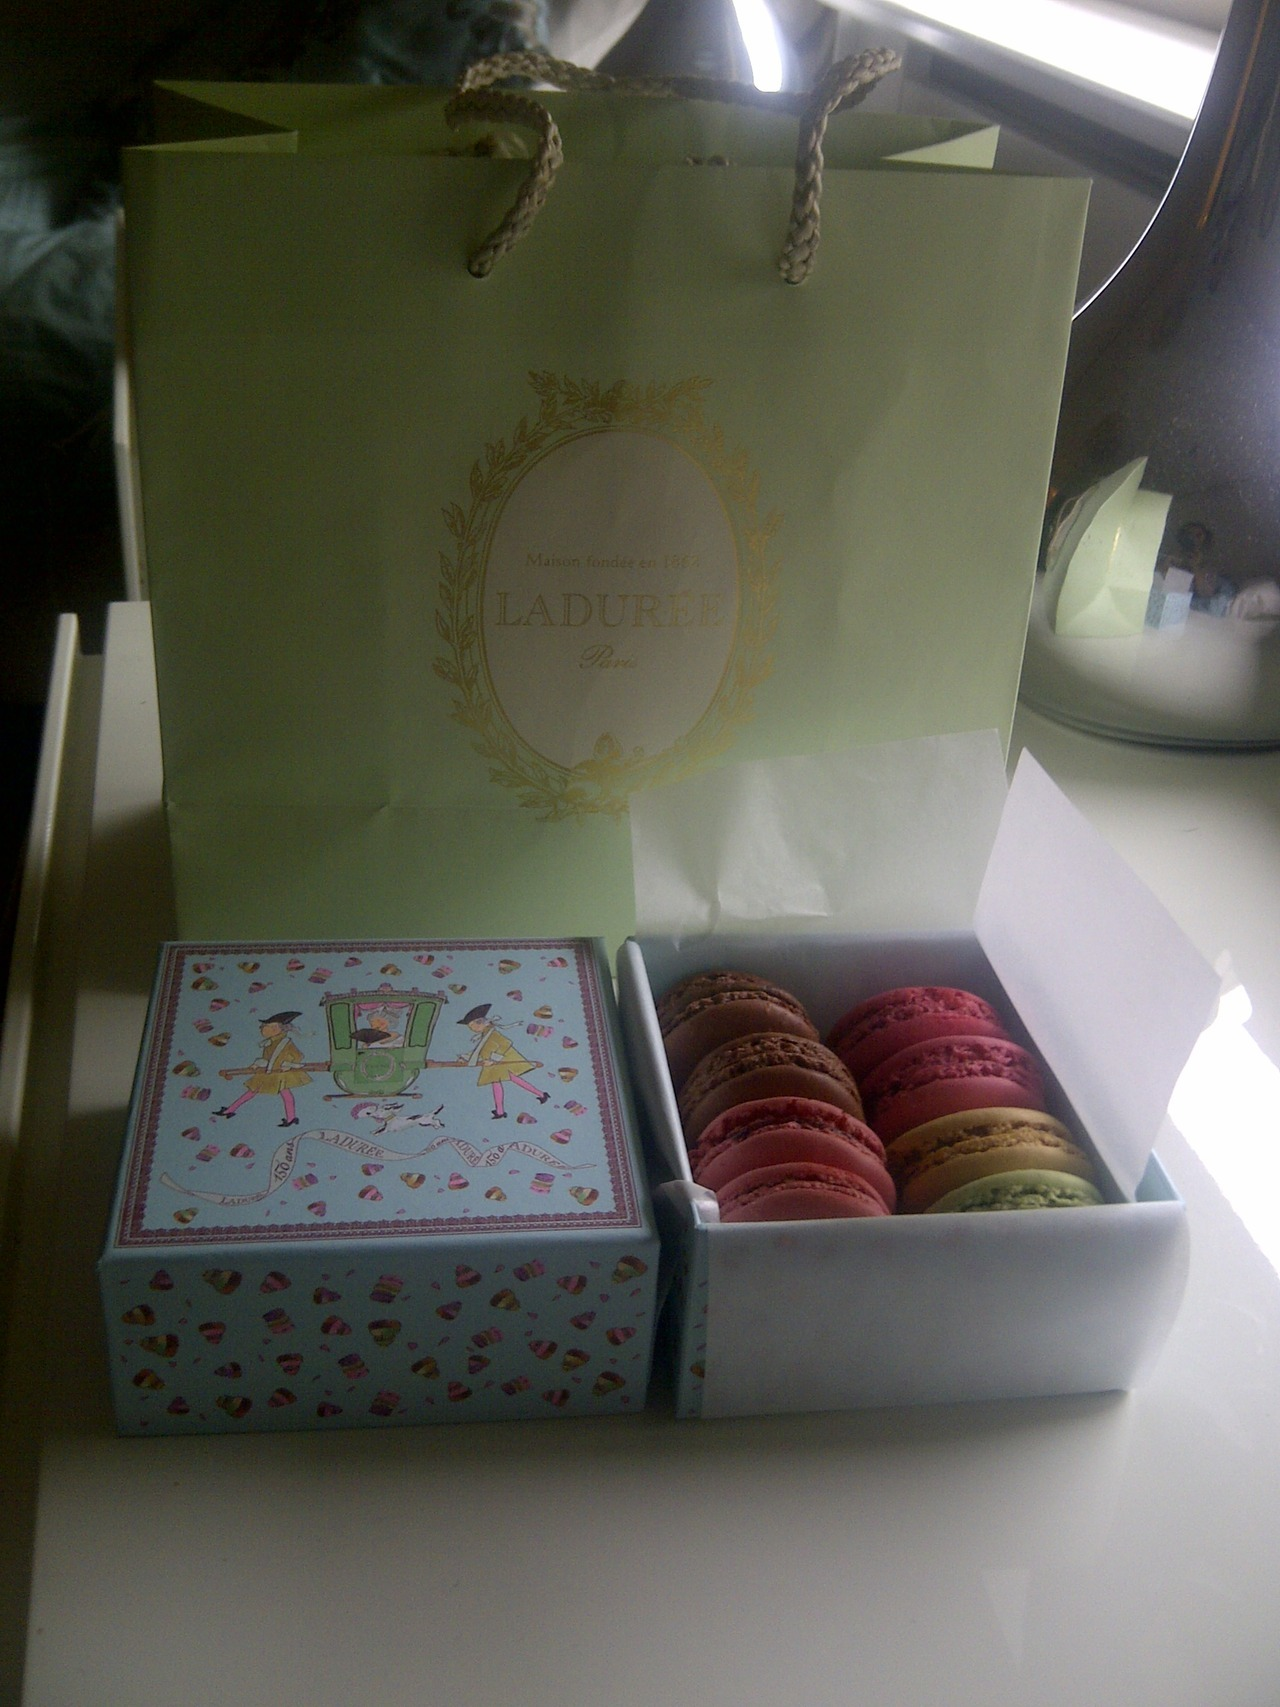 My days are always better when I've got a box of macaroons.